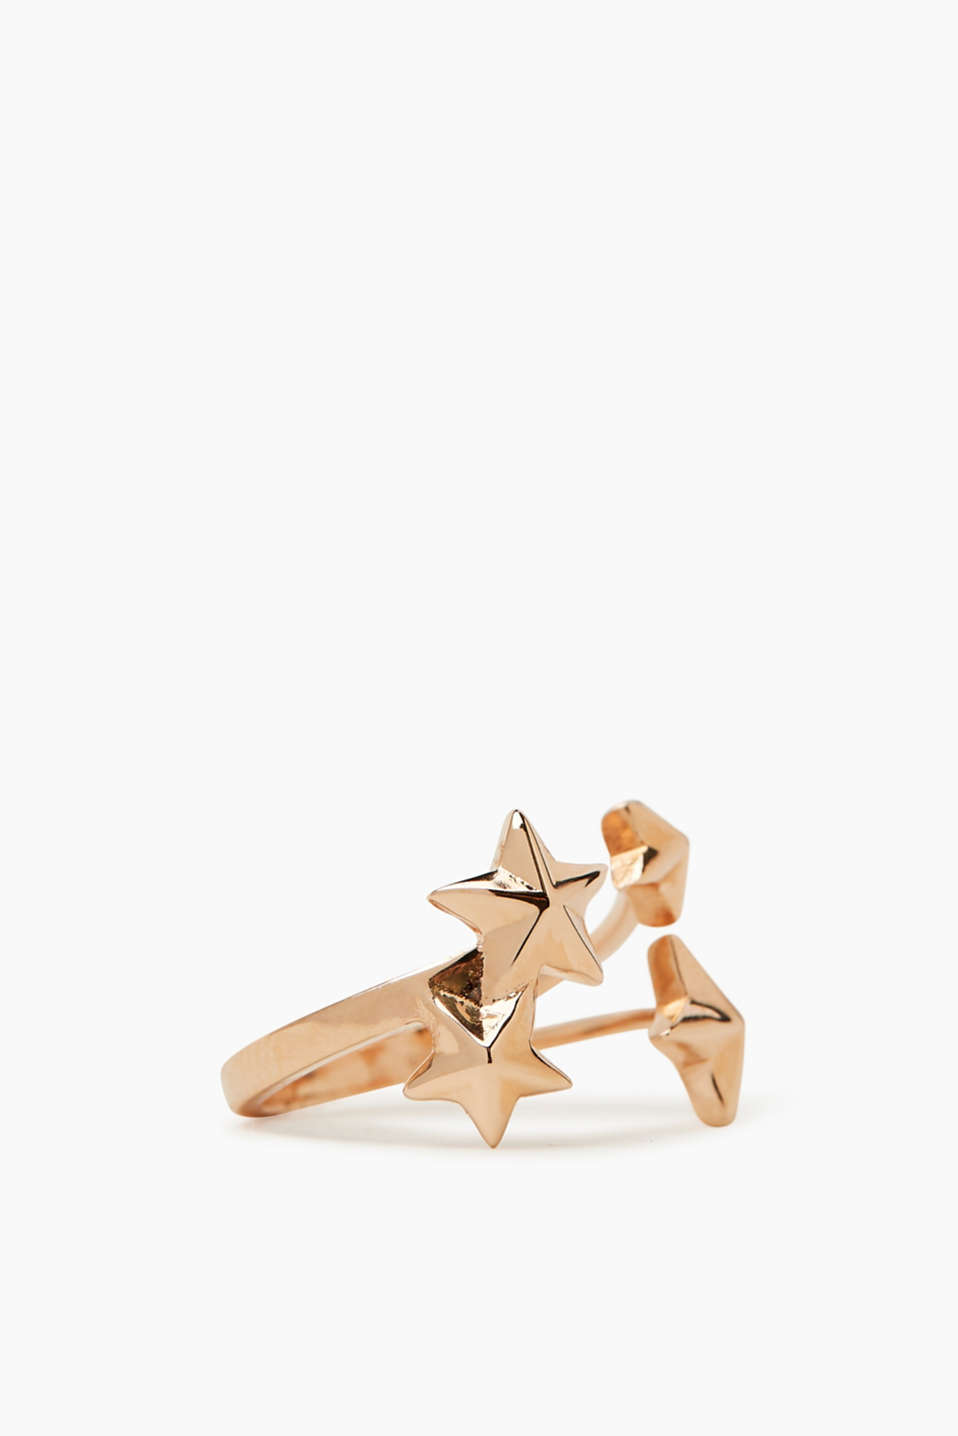 Esprit - Ring with a decorative star, in sterling silver